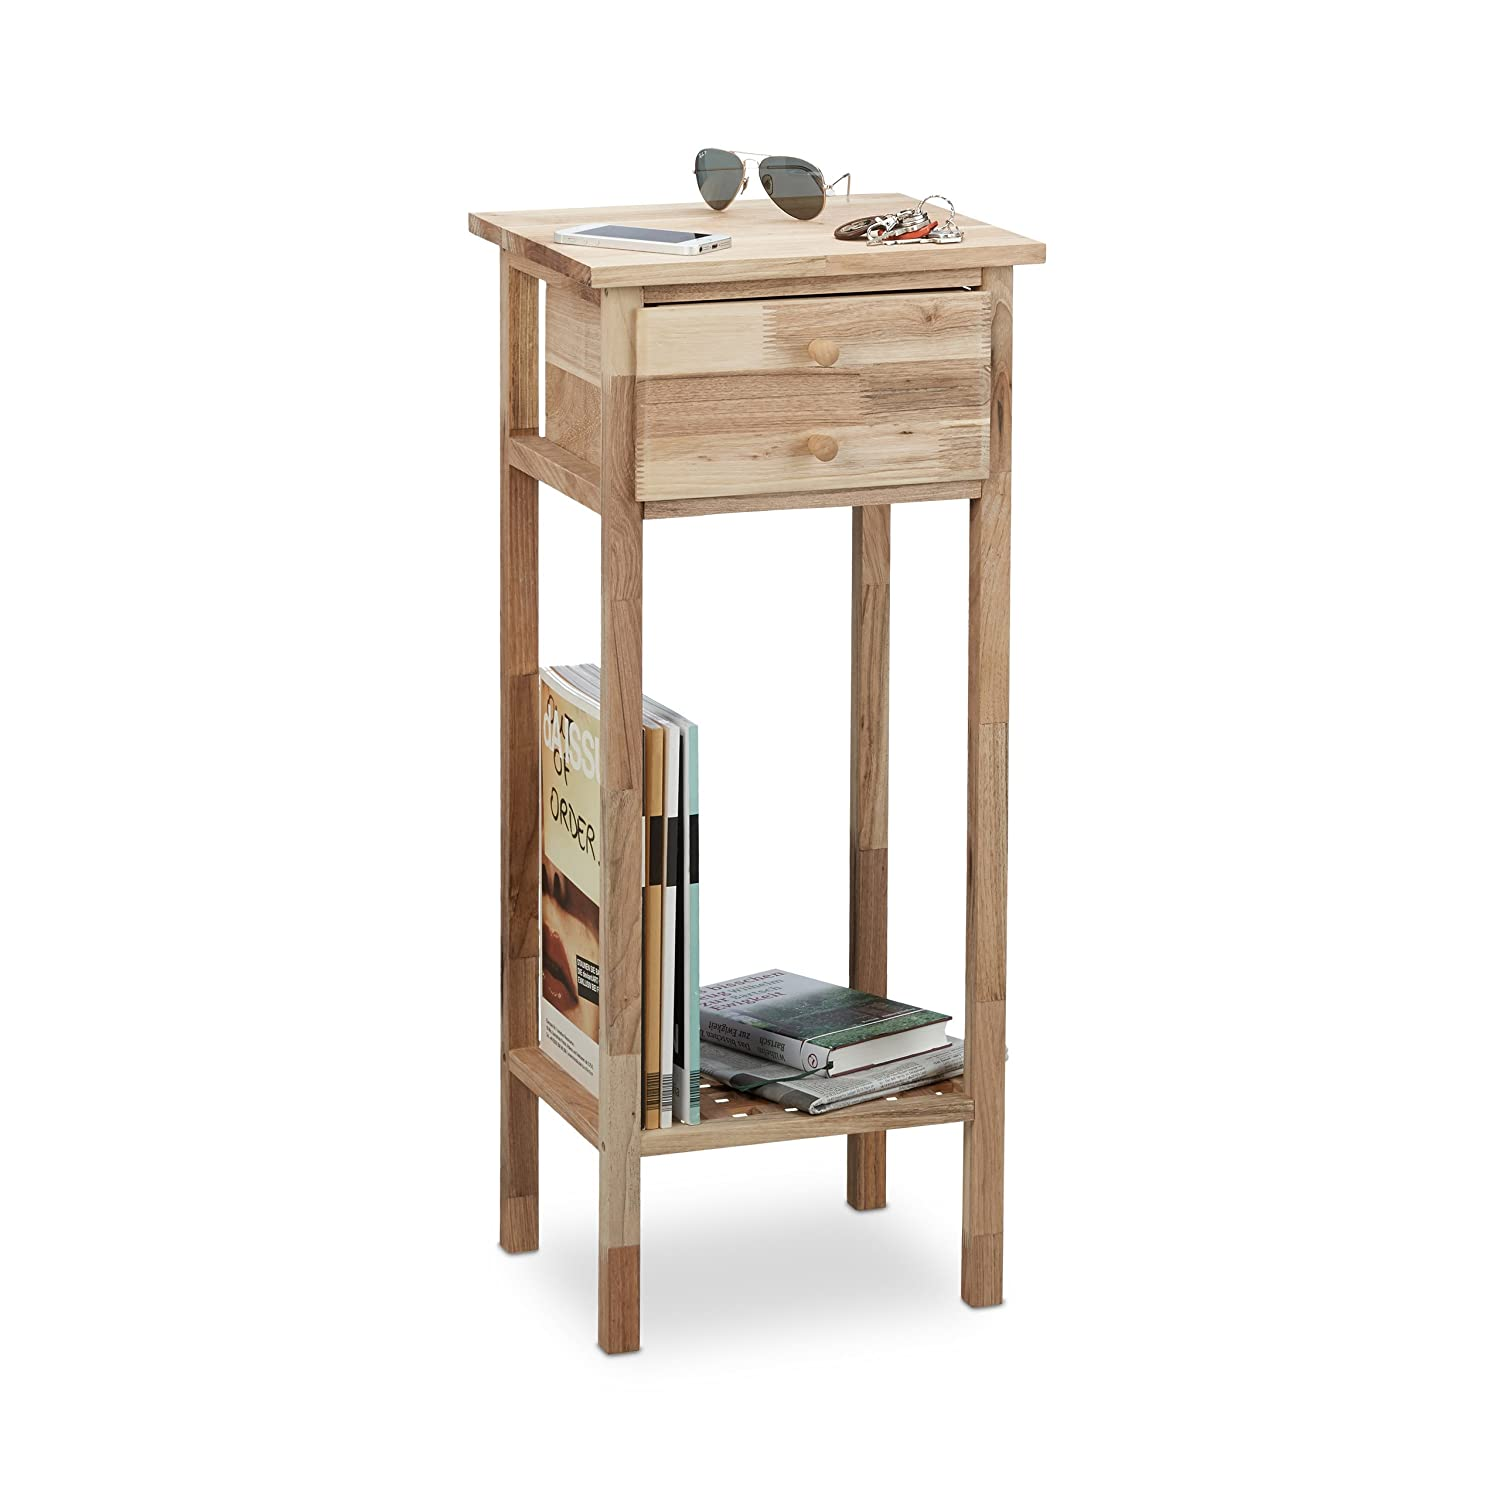 Relaxdays Walnut Side Table with Drawer, 2 Shelves, Telephone Table, Tall Wooden Table, HxWxD: 80 x 35 x 30 cm, Natural 10021329